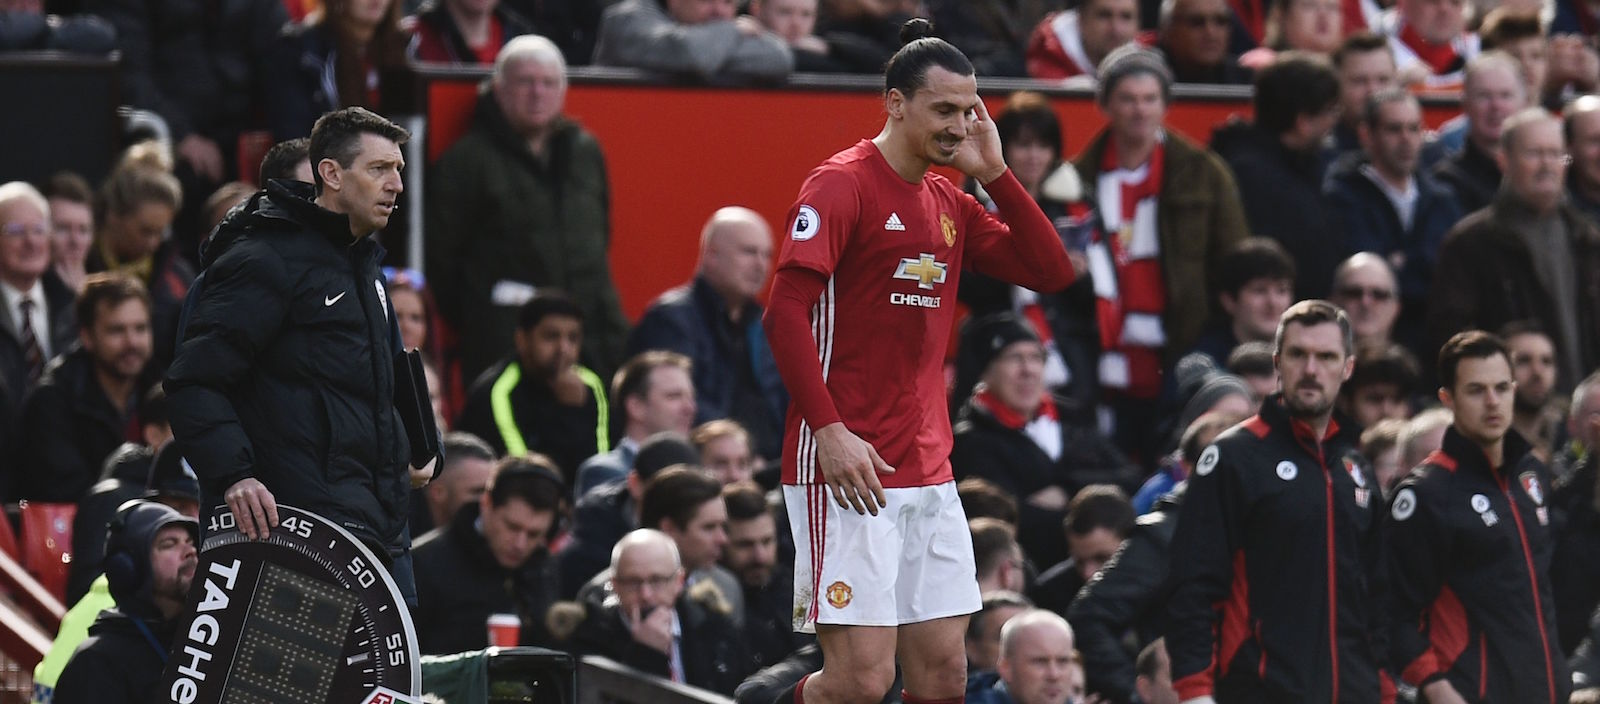 Jose Mourinho plays down talk of Zlatan Ibrahimovic joining LA Galaxy in March